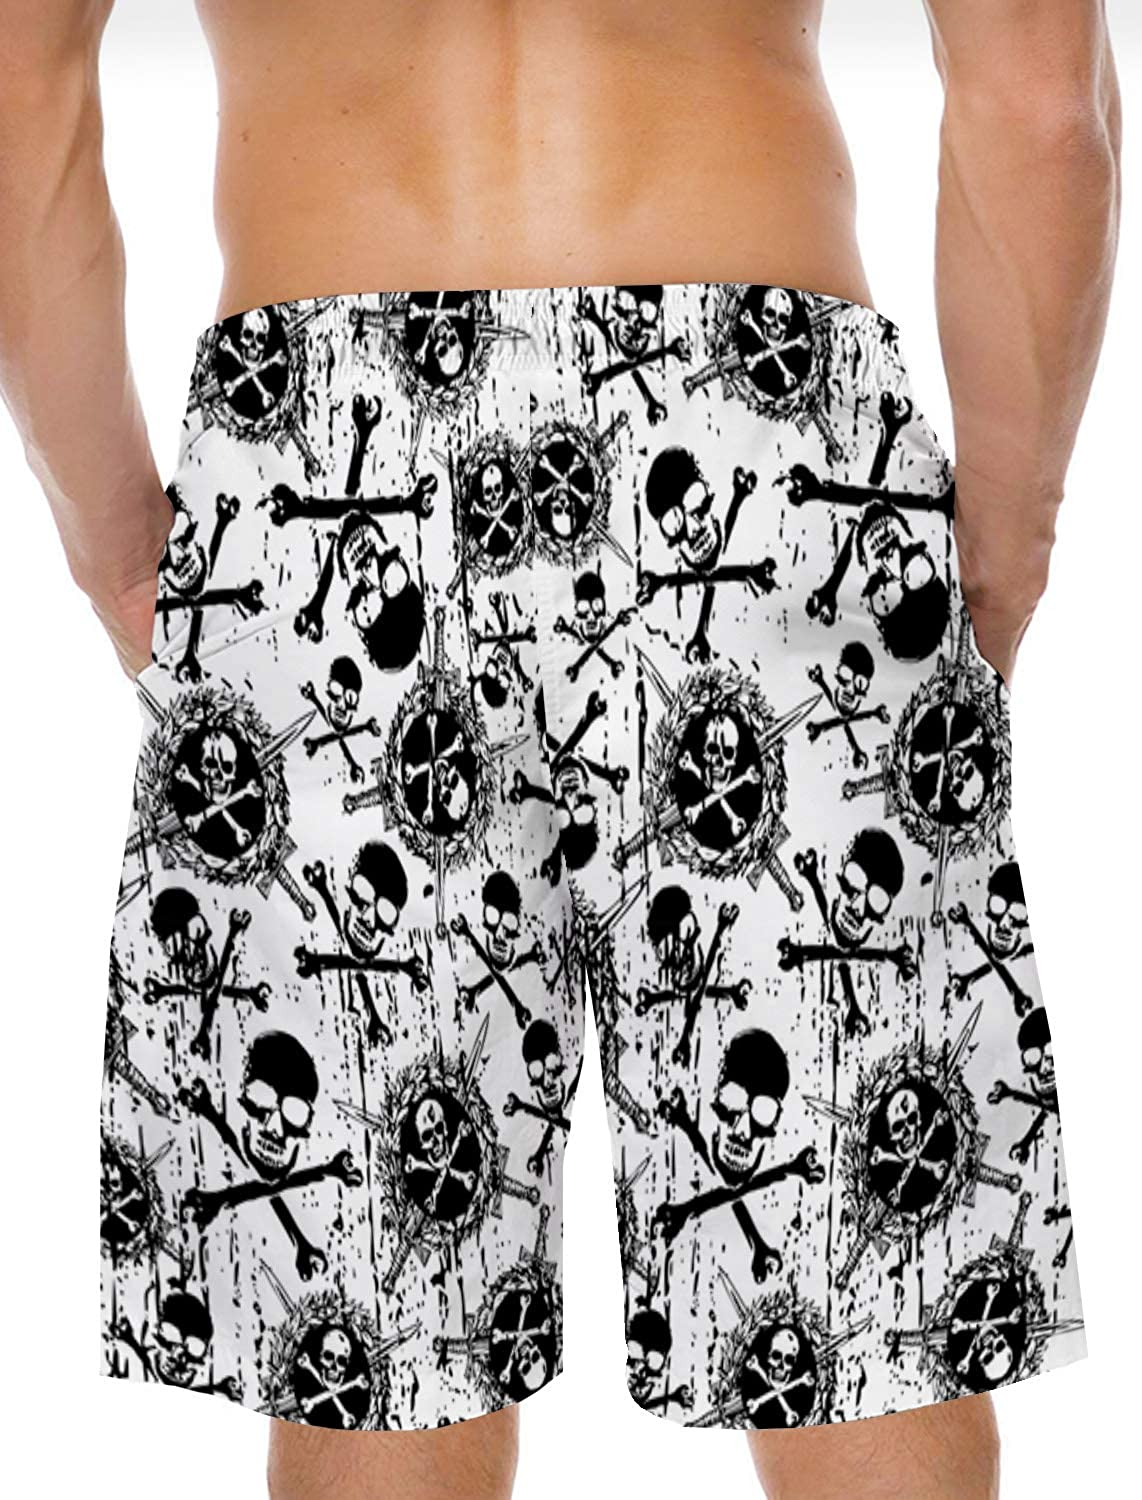 Mens Beach Shorts Black and White Pirate Skull Head Summer Casual Quick Dry Short Pants Stretch Swimming Trunks with Pocket